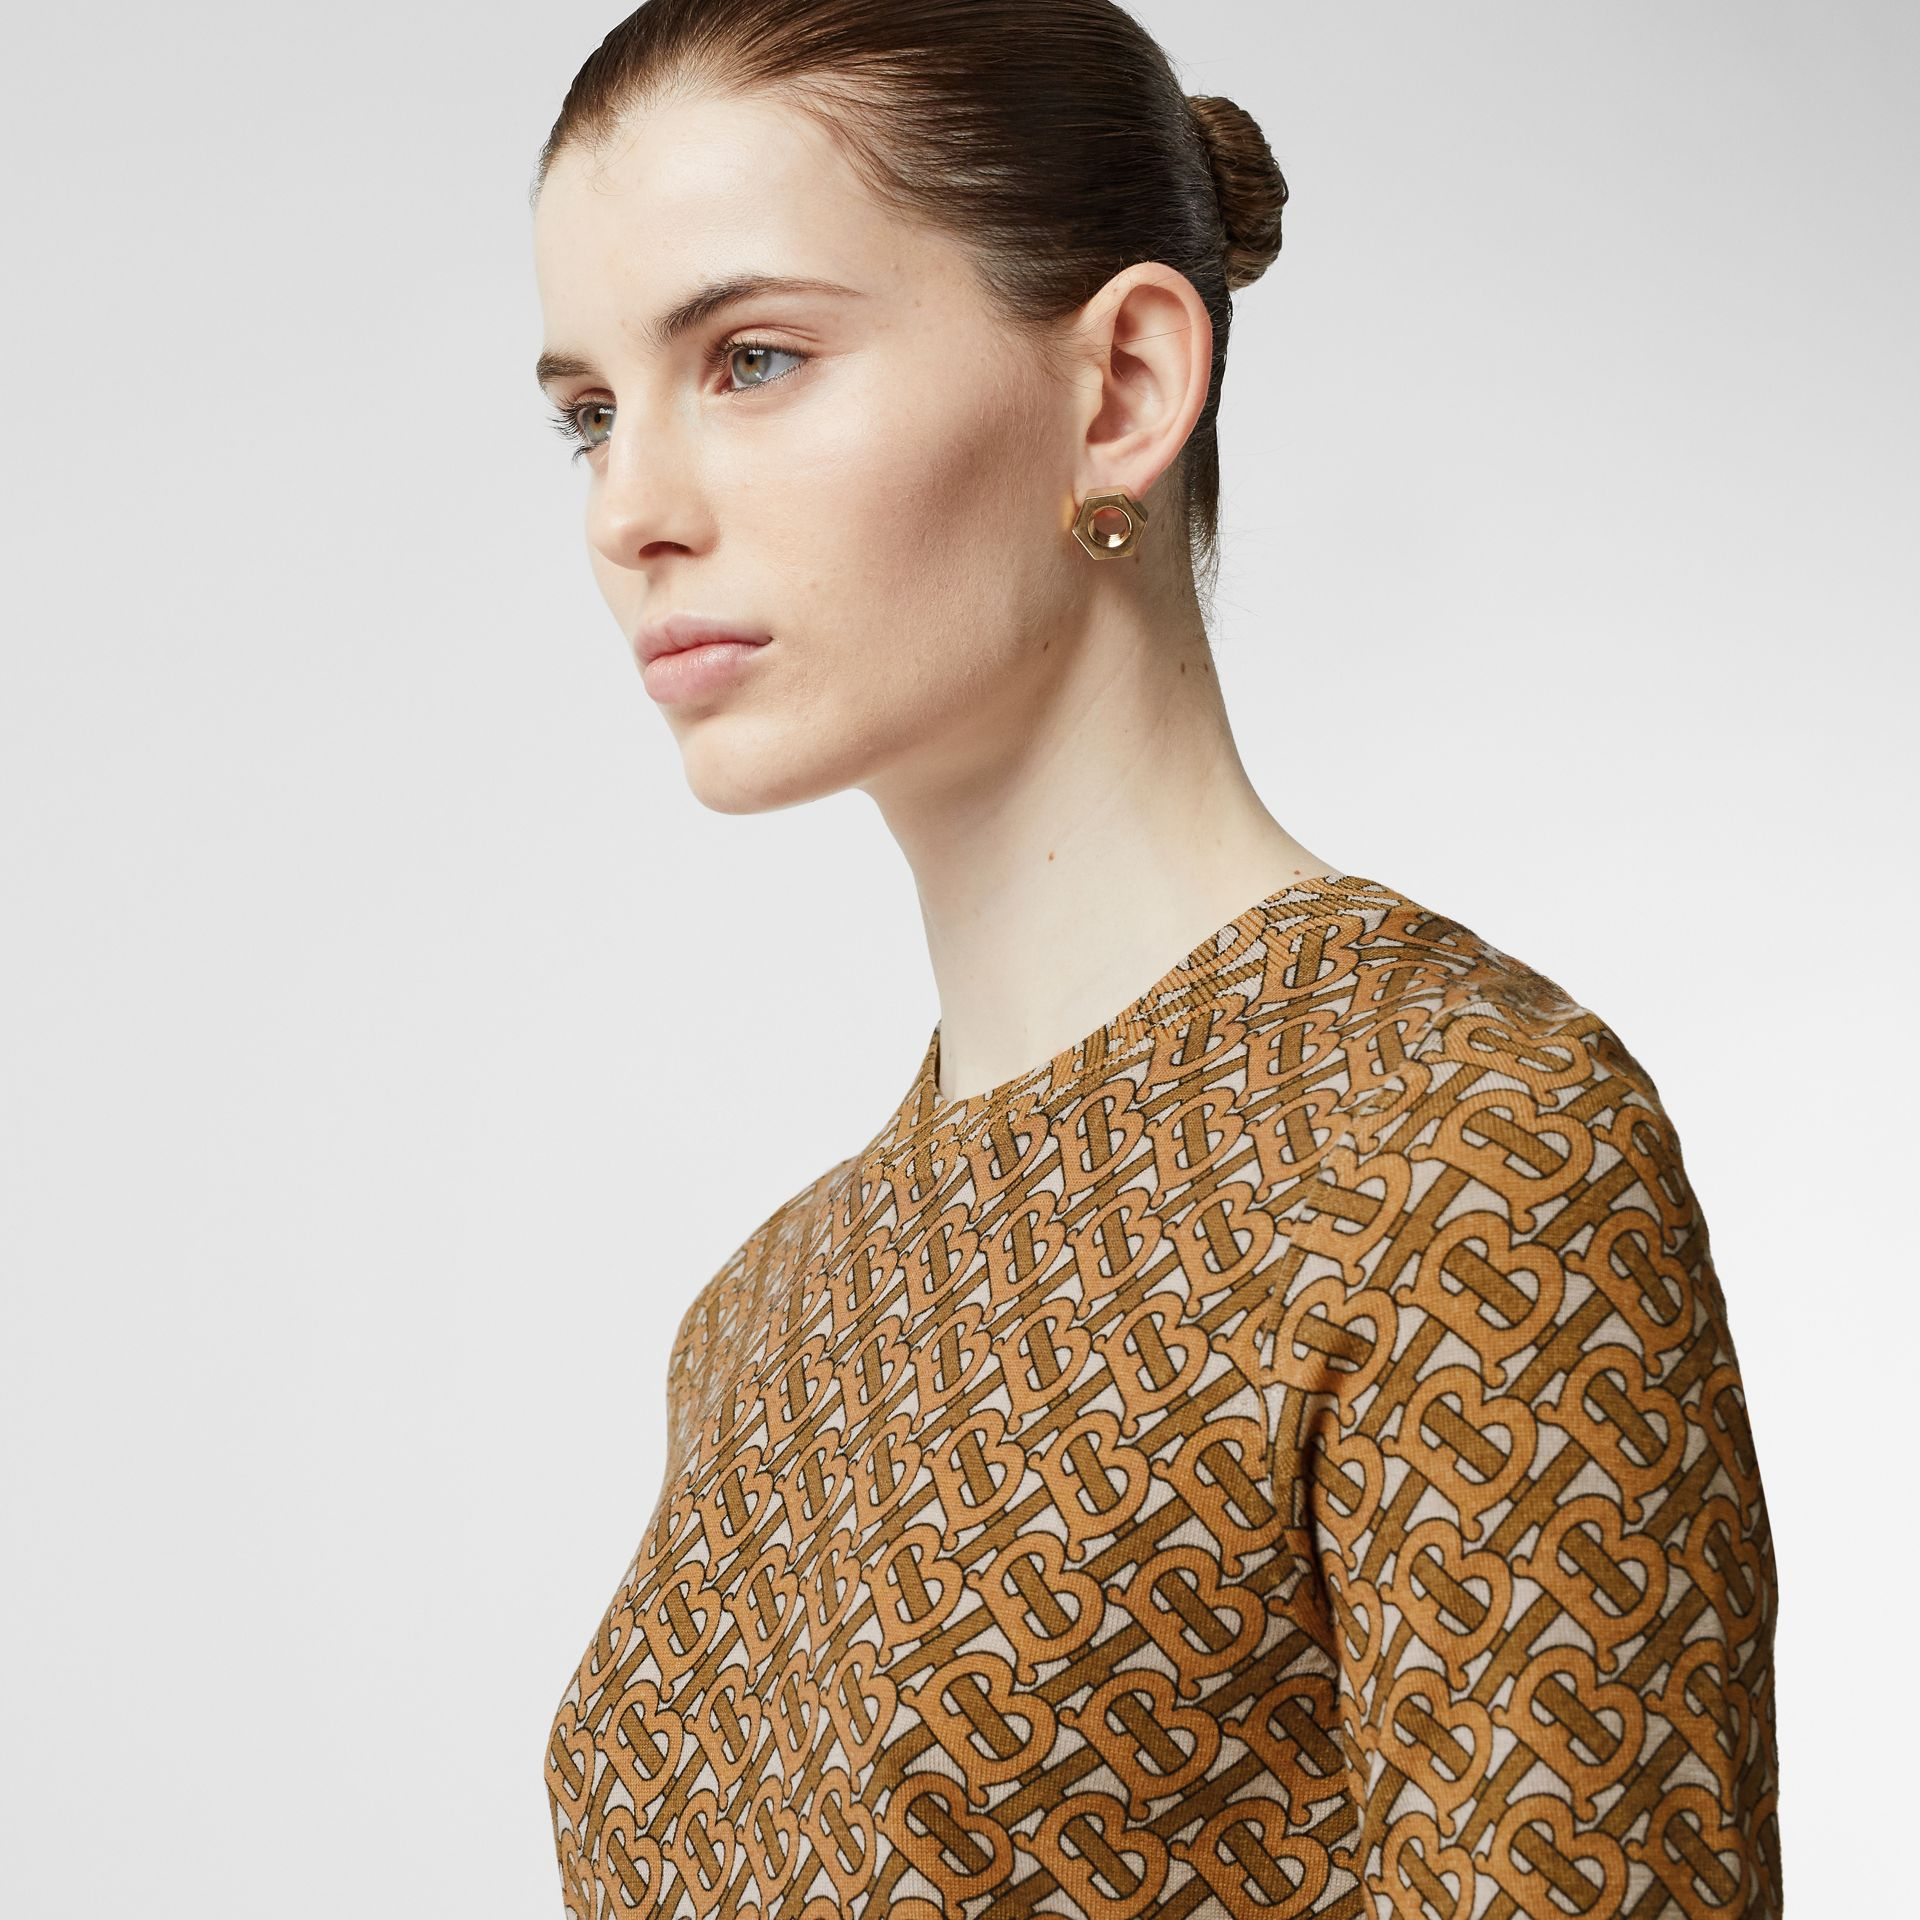 Monogram Print Merino Wool Top in Beige - Women | Burberry - gallery image 1